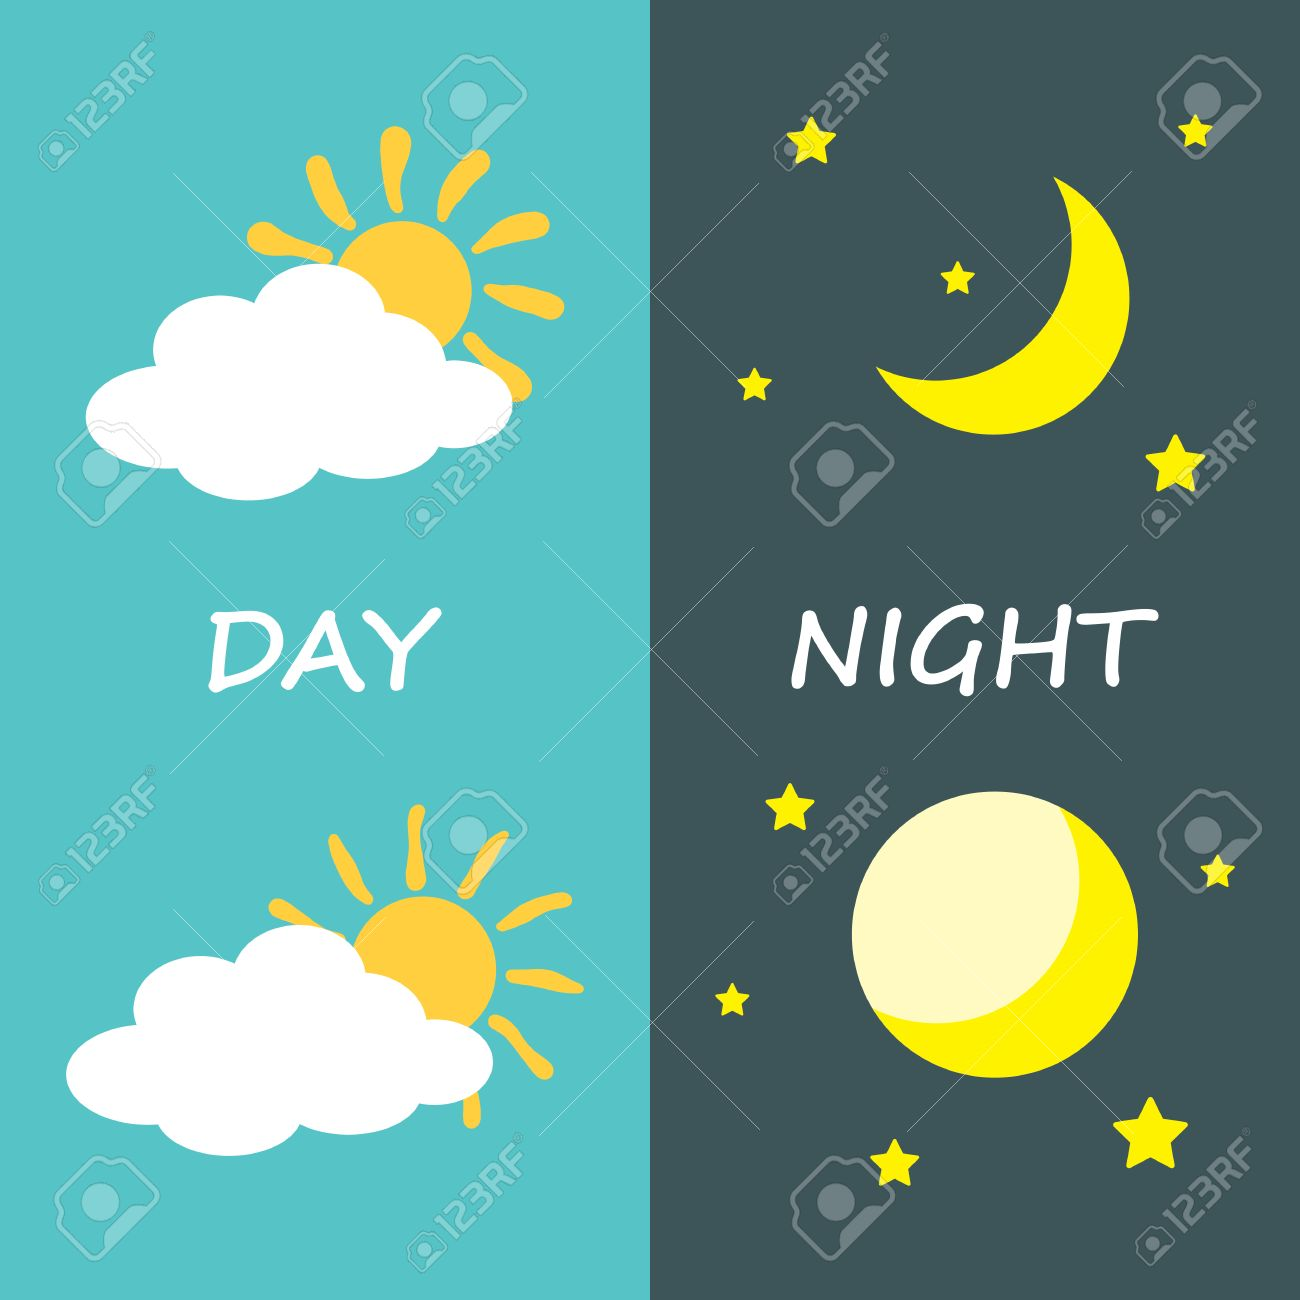 Day and night sun and moon icon symbol design vector illustration day and night sun and moon icon symbol design vector illustration stock biocorpaavc Images